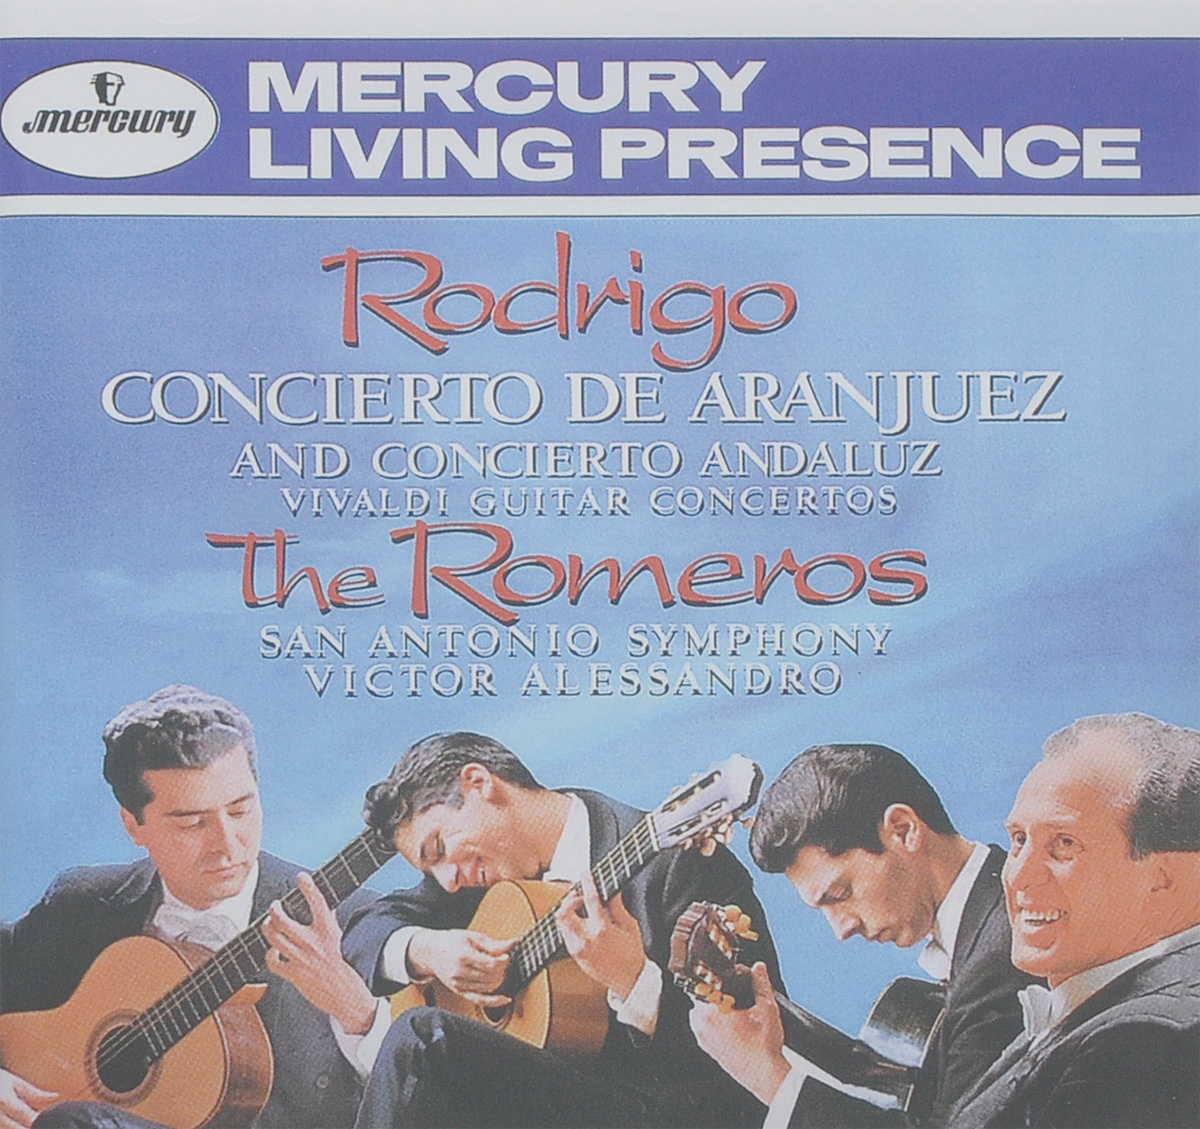 Виктор Алессандро,The Romeros,San Anlonio Symphony Orchestra Victor Alessandro. Rodrigo. Concierto De Aranjuez And ConciertoAndaluz / Vivaldi. Guitar Concertos acoustic guitar neck fingerboard fretboard for guitar parts replacement rosewood zebrawood veneer